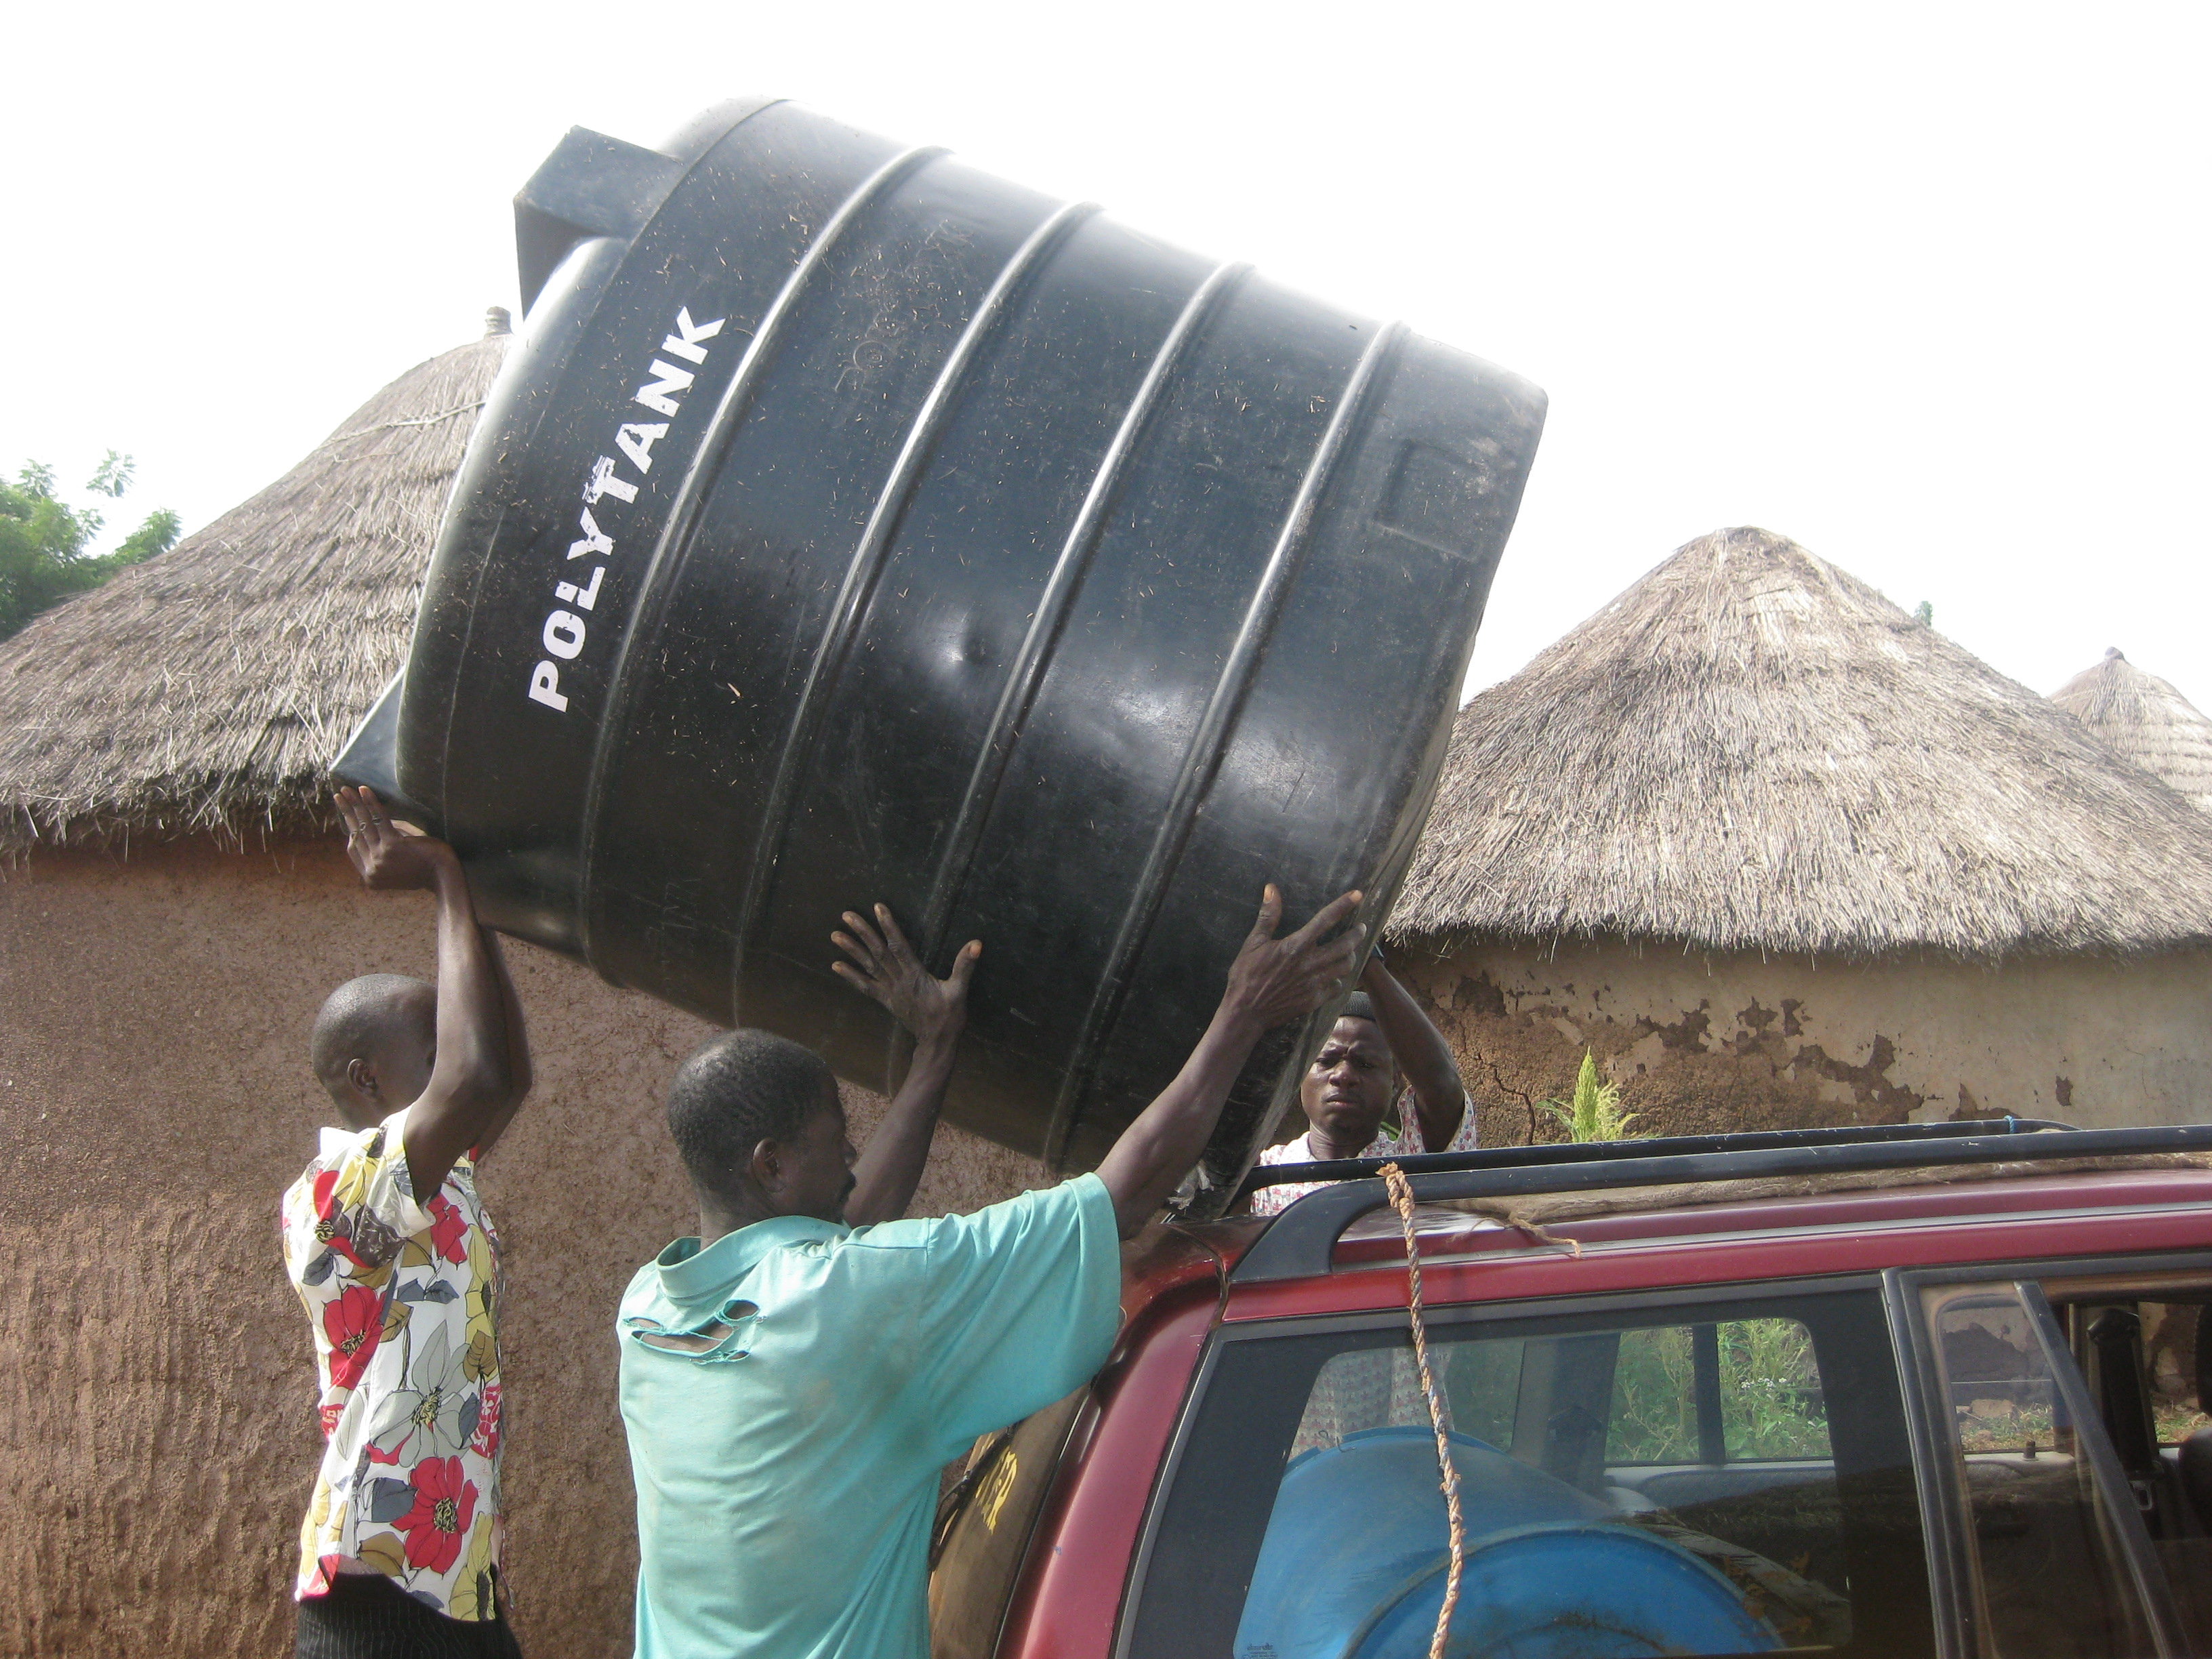 Loading the polytank onto the roof of the taxi - apparently the Tamale police didn't think that this was a funny as I did!